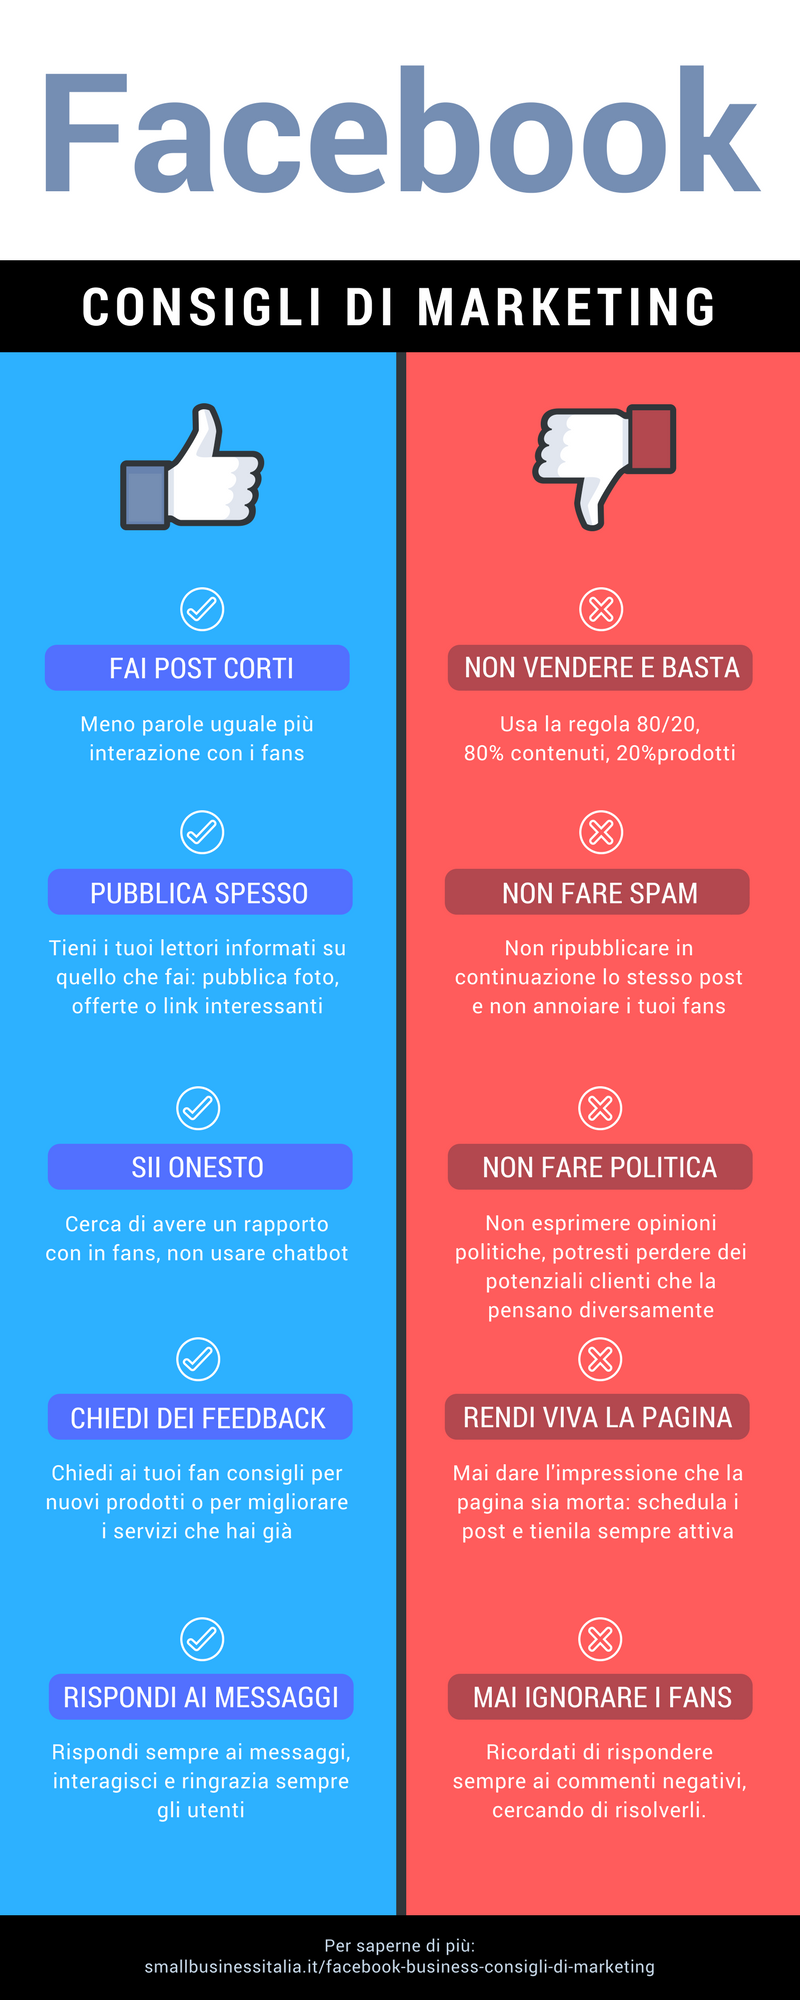 facebook consigli di marketing